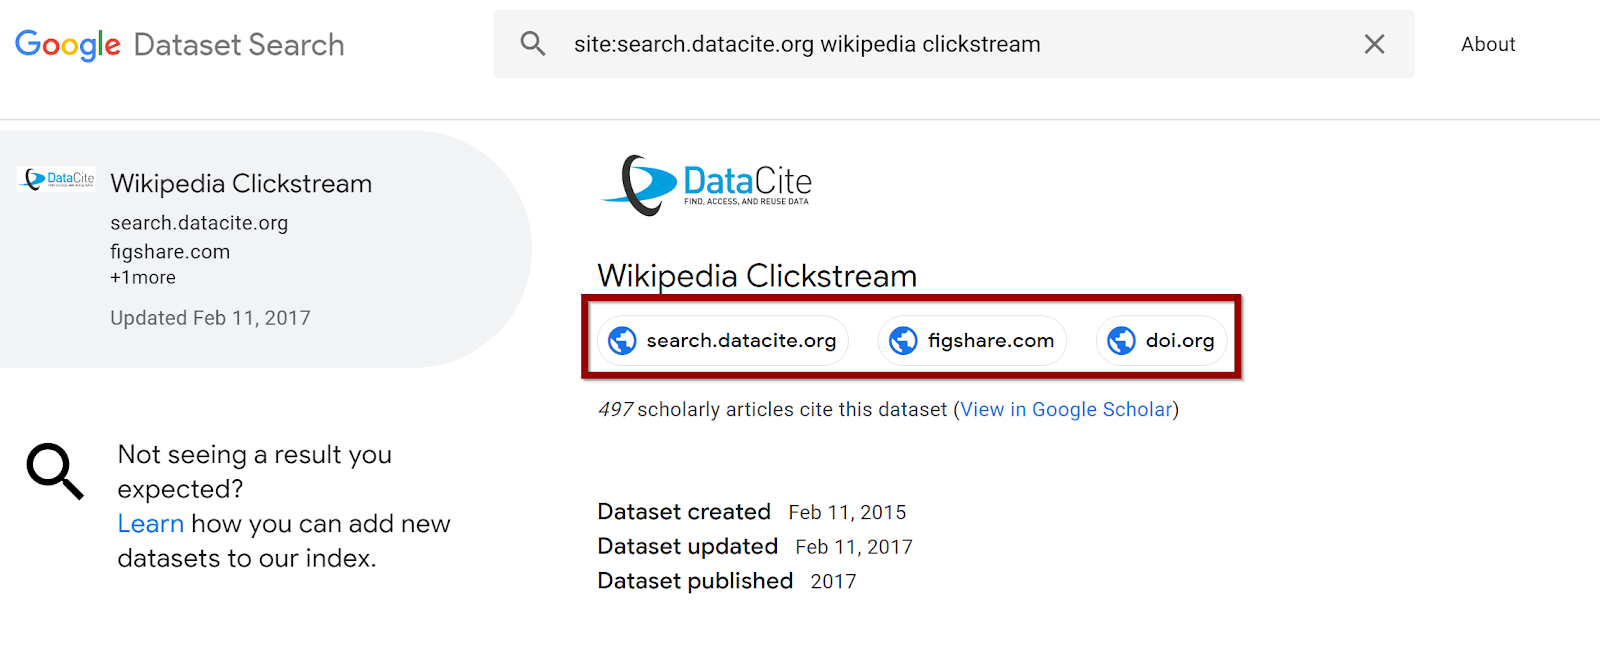 Google dataset search - a reflection on the implications